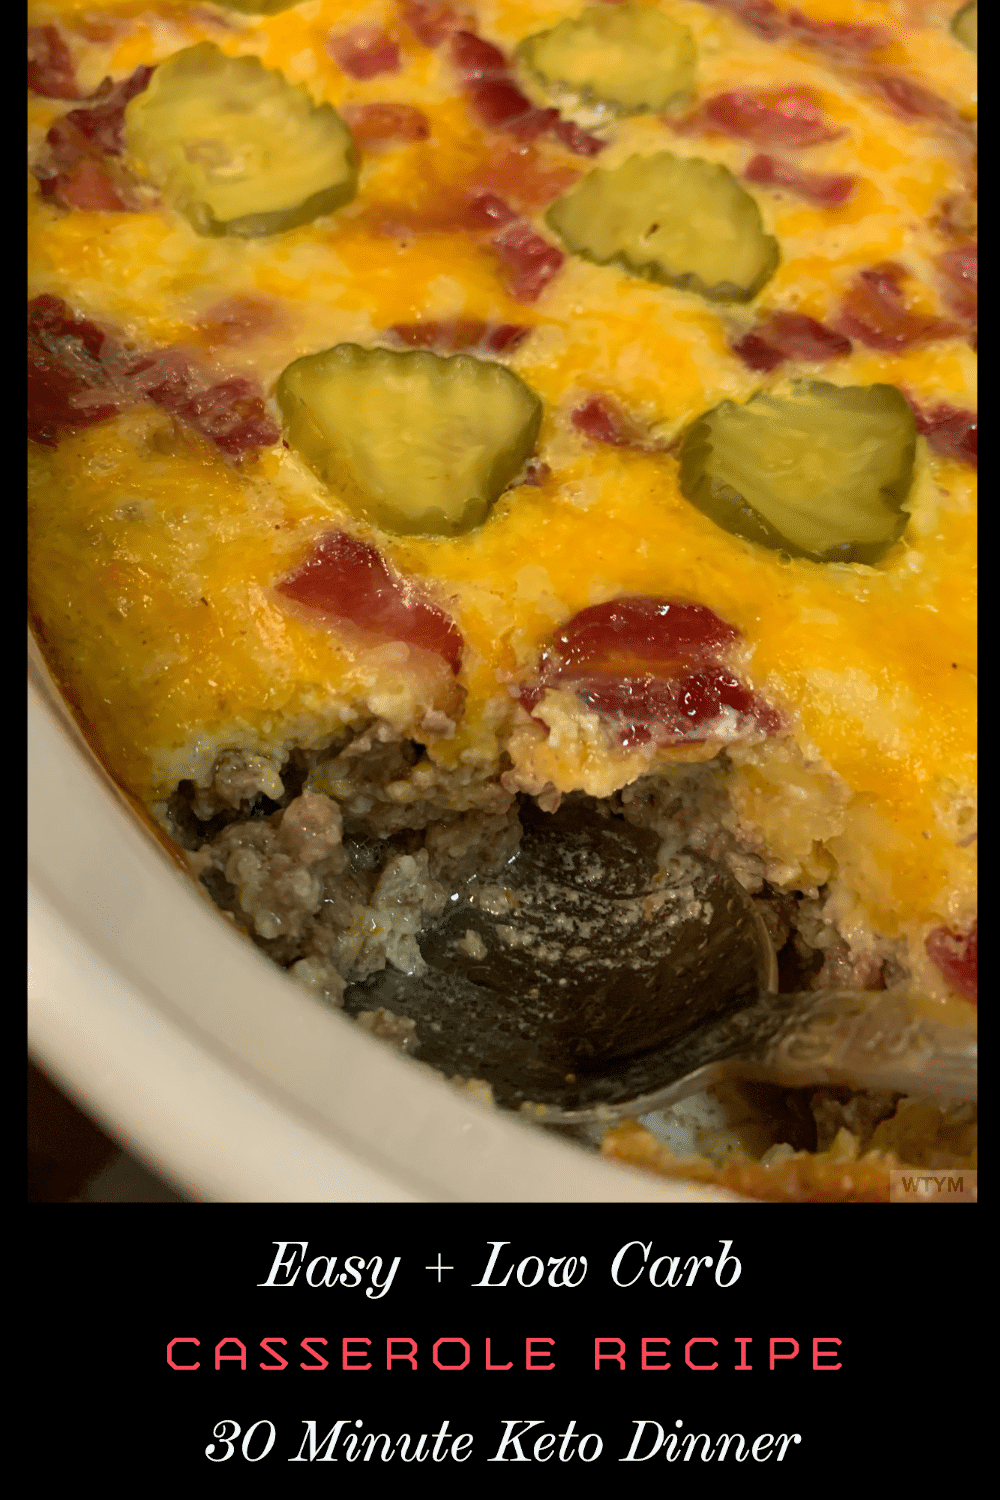 The Keto Ground Beef Casserole Recipe That Vicki Gunvalson Needed To Save Her Sanity Recipe Food Recipes Ground Beef Casserole Beef Casserole